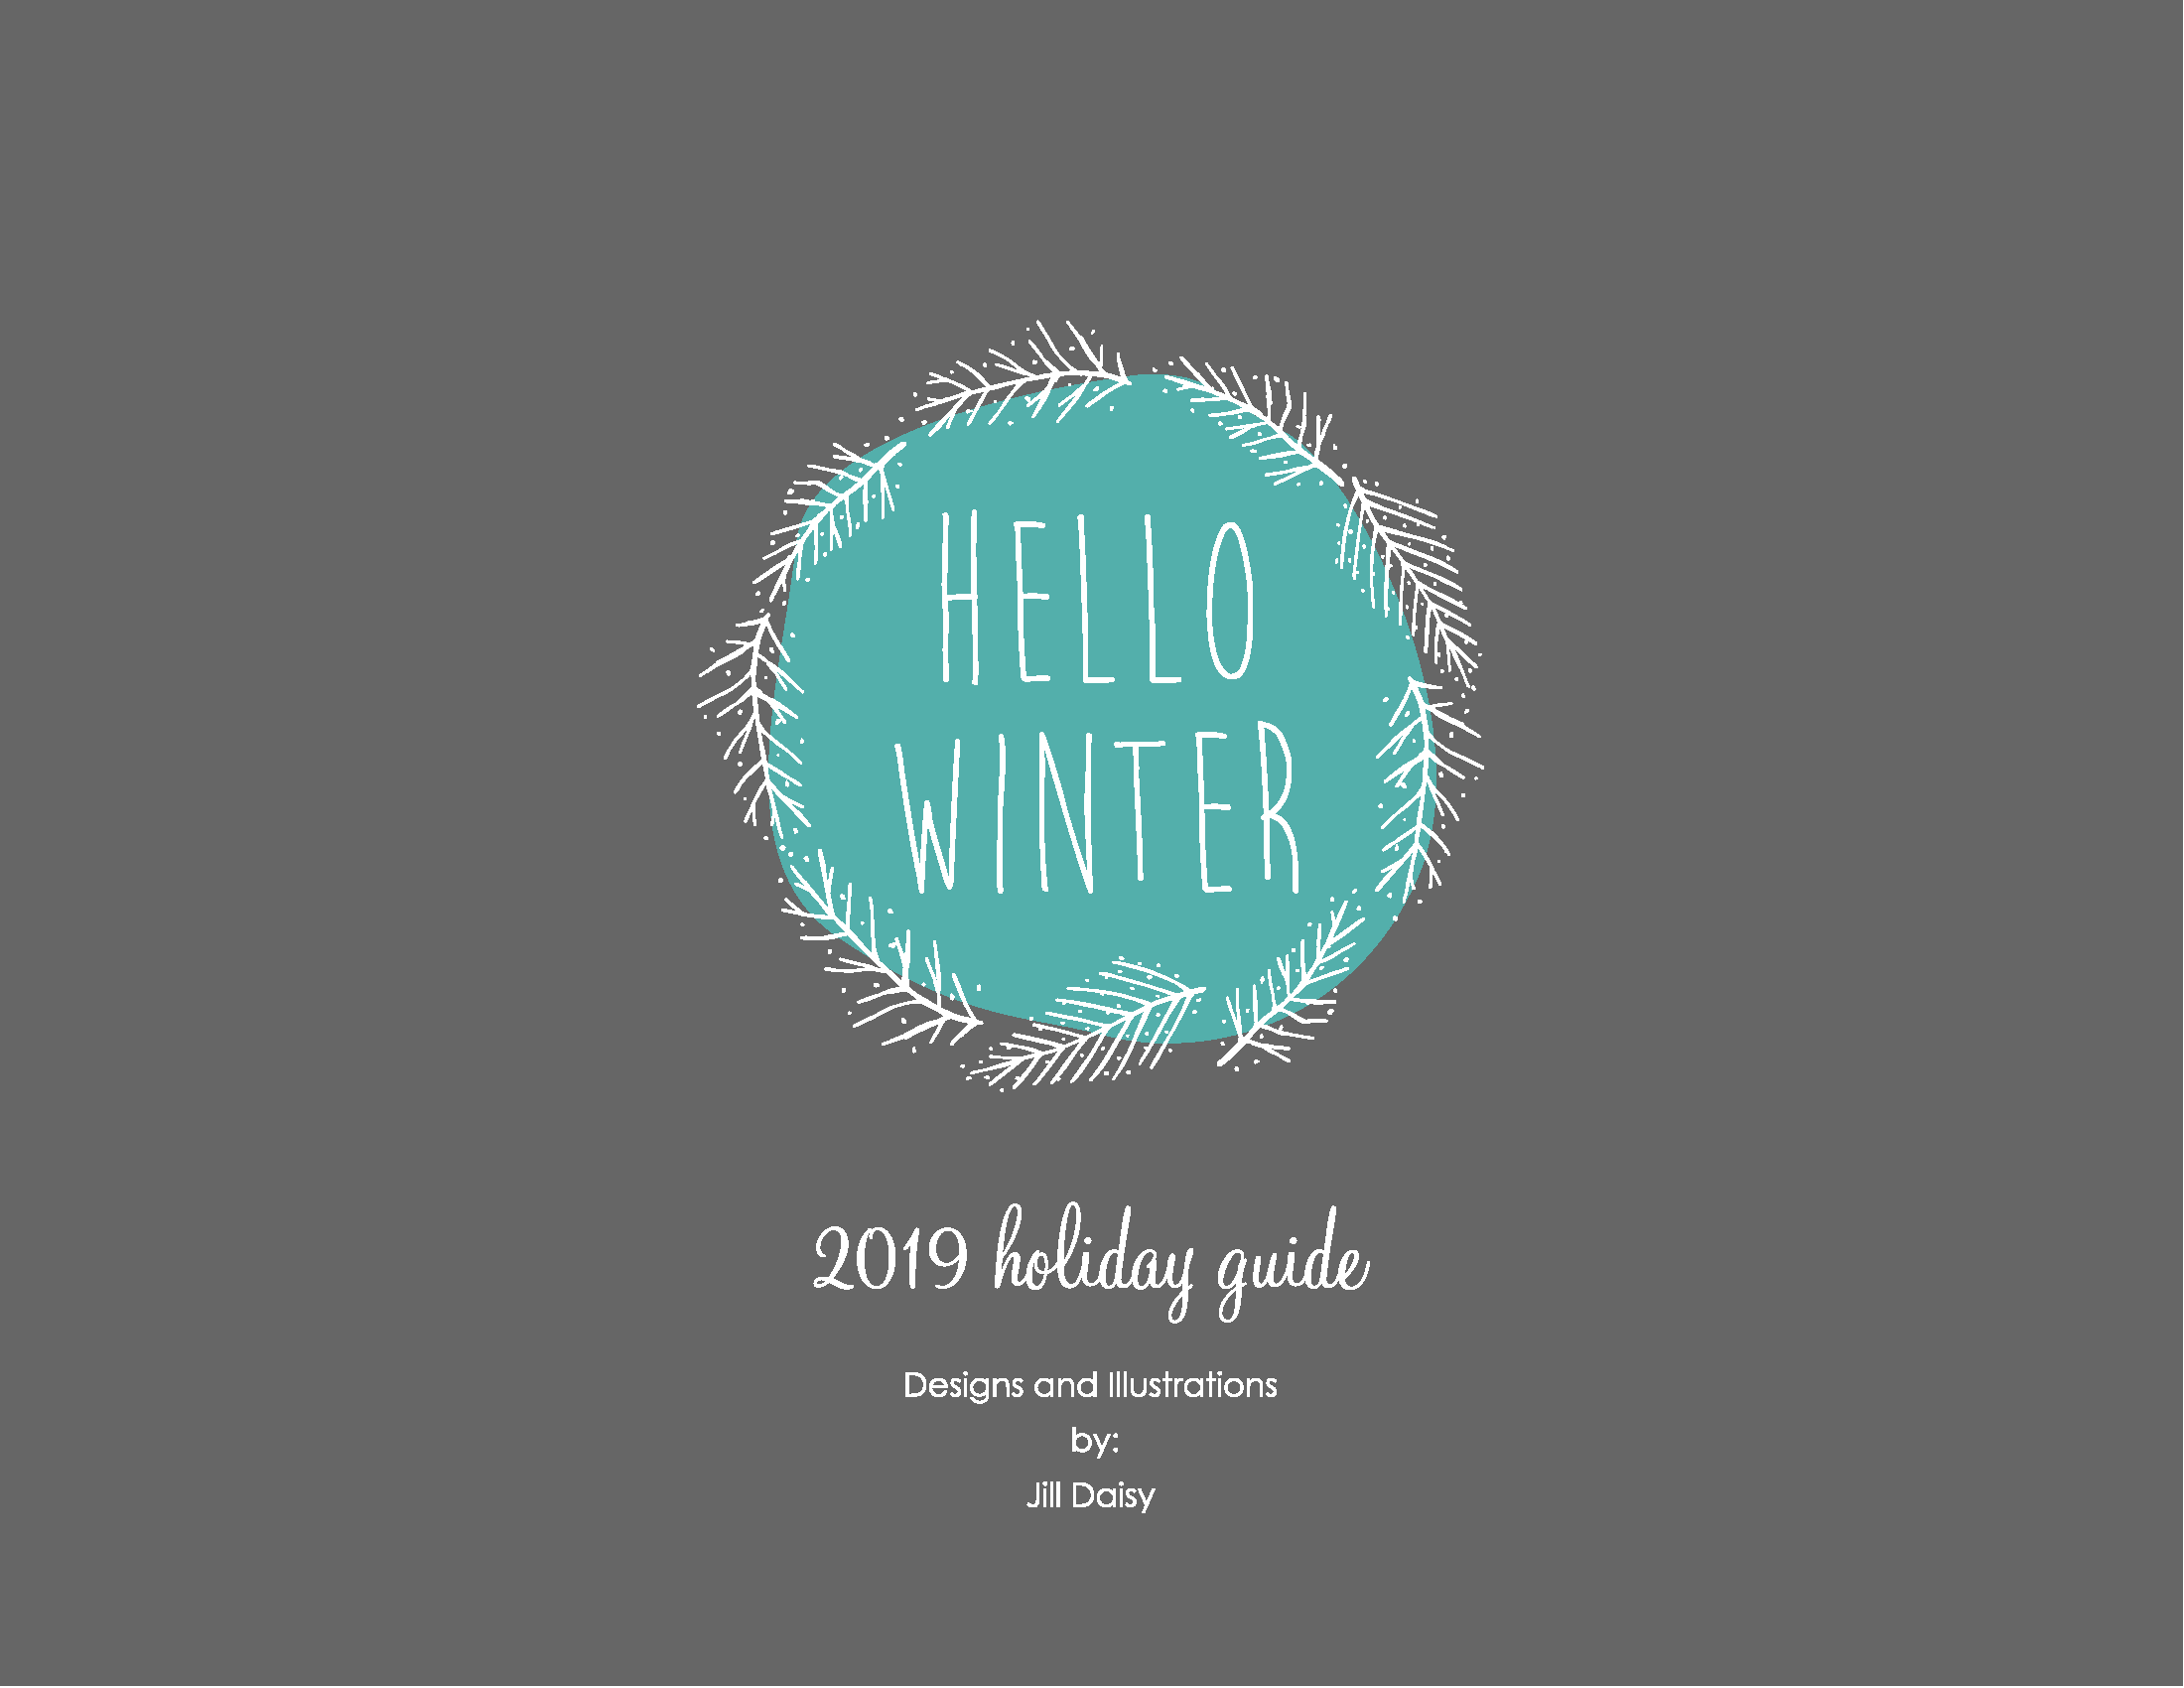 HelloWinter-2019 Holiday Guide-OL_Page_1.png